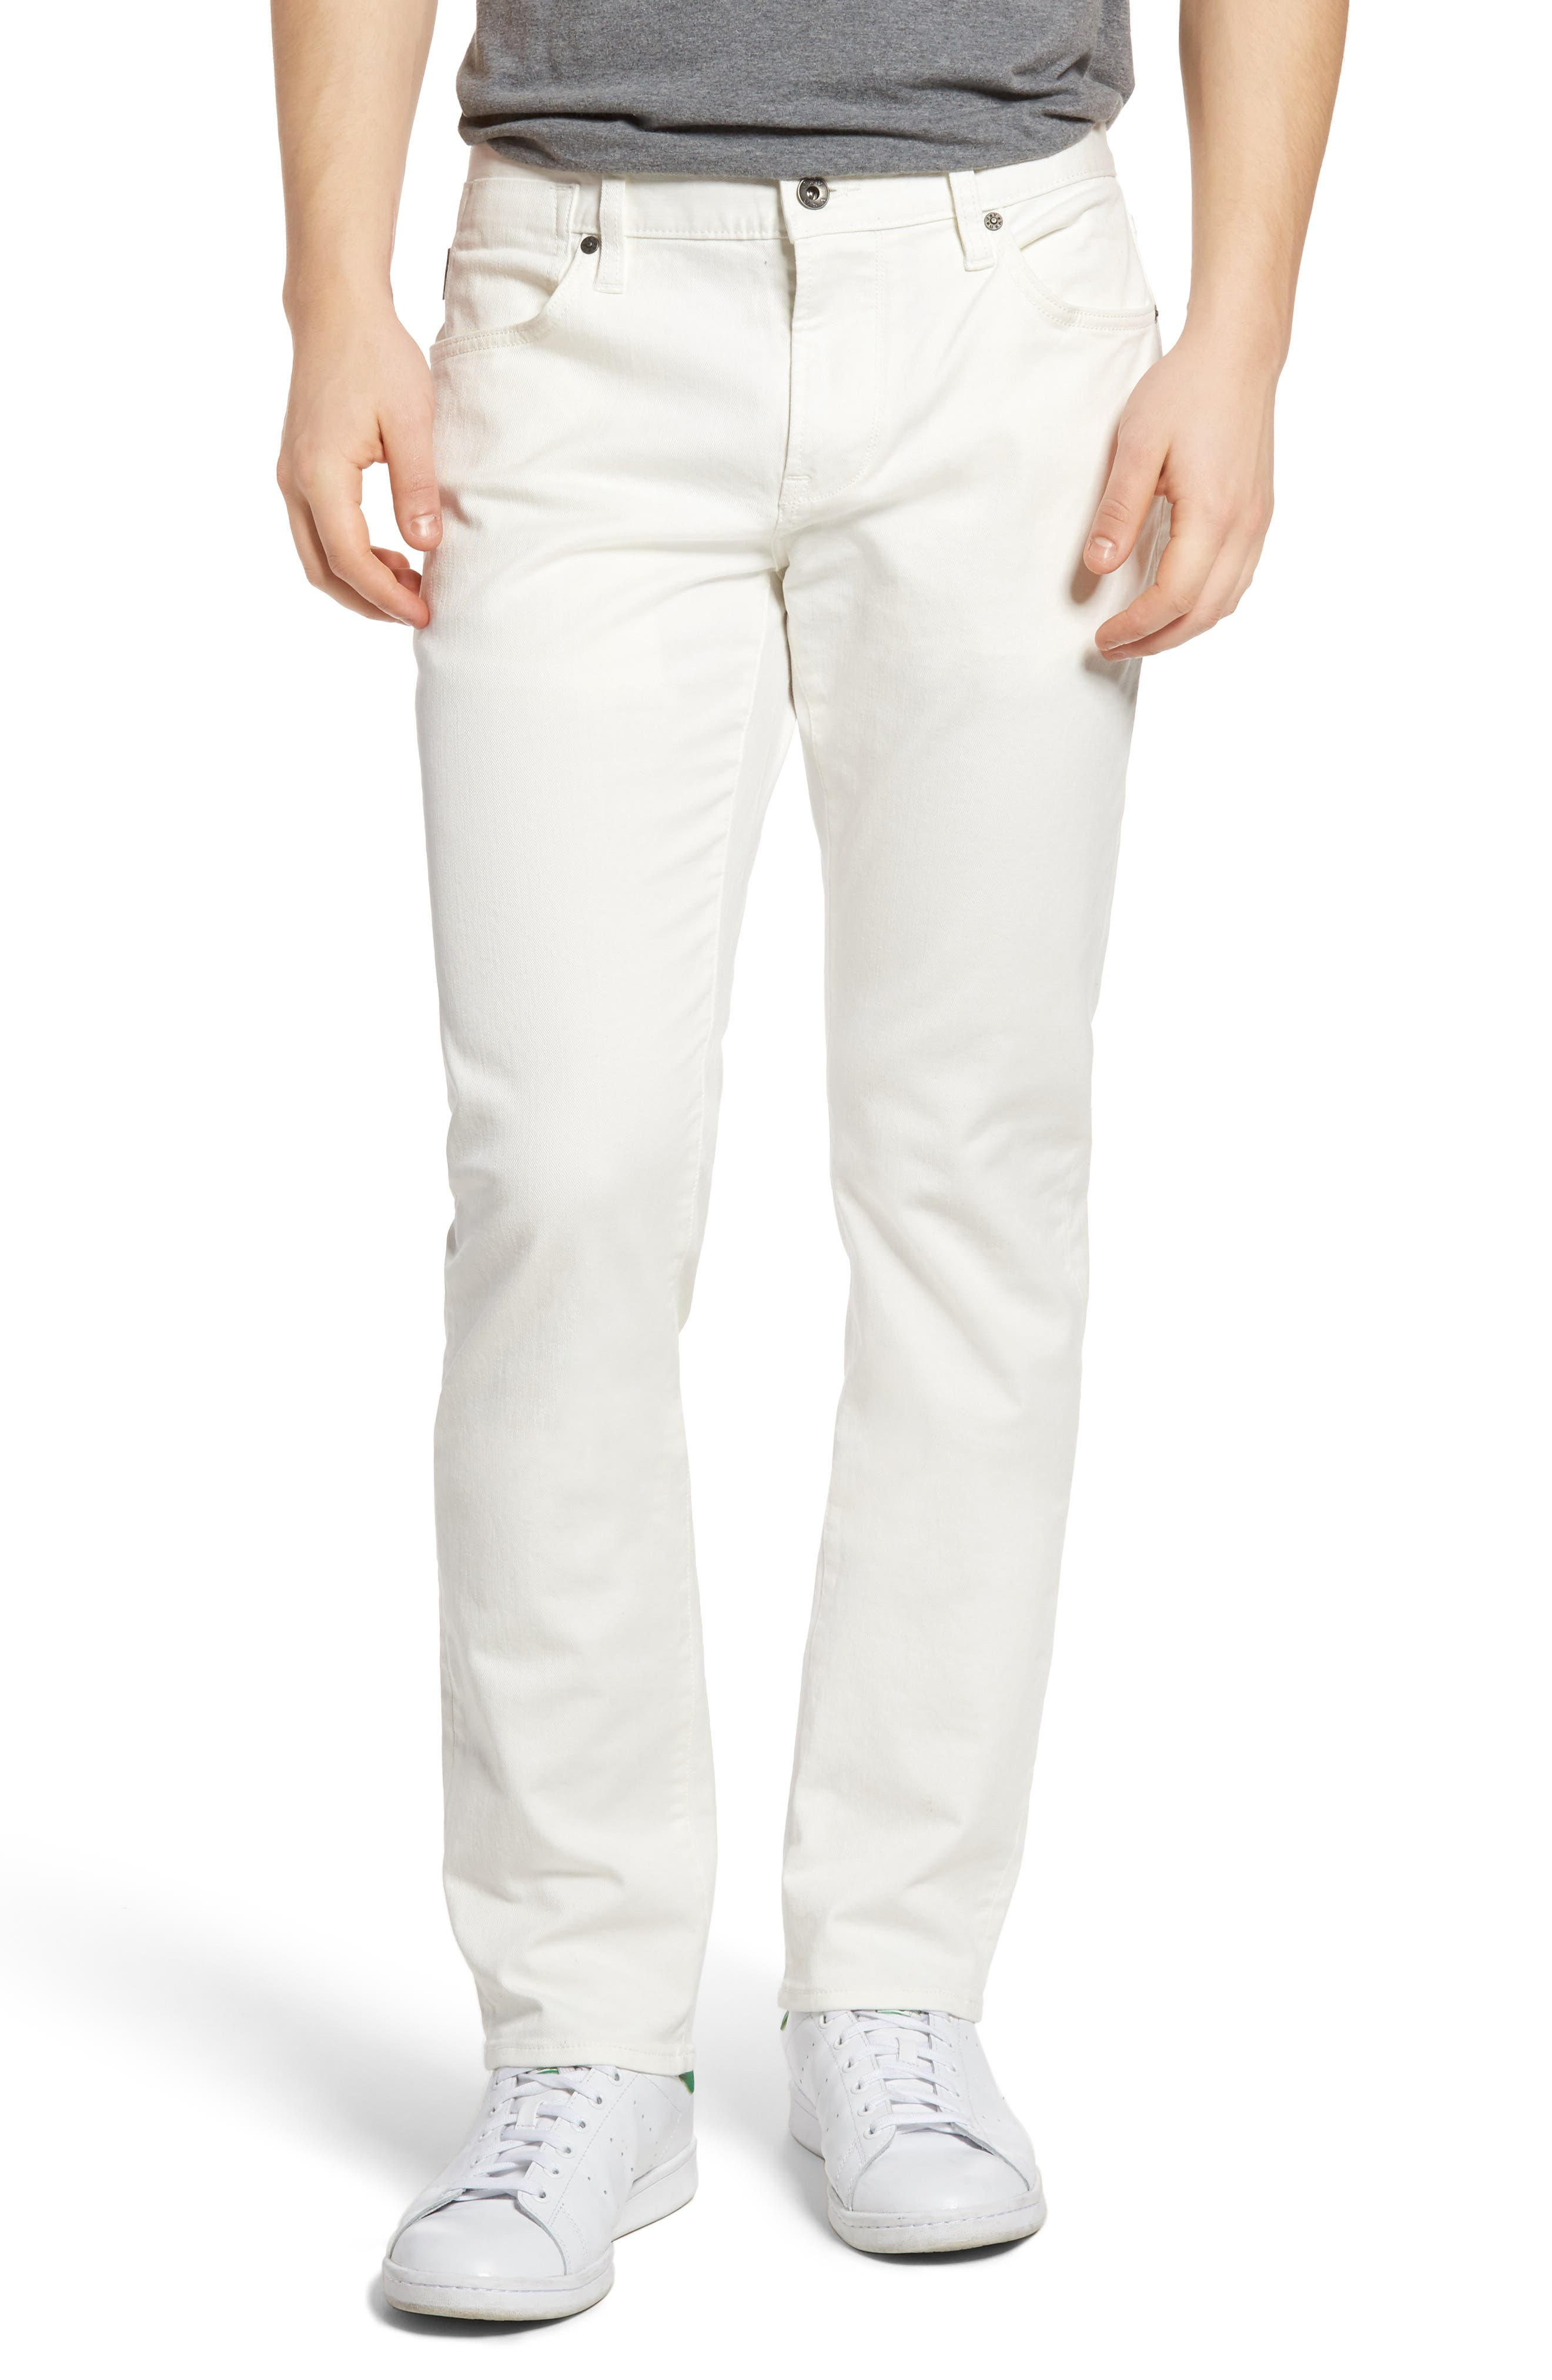 Bowery Slim Fit Jeans,                         Main,                         color, White